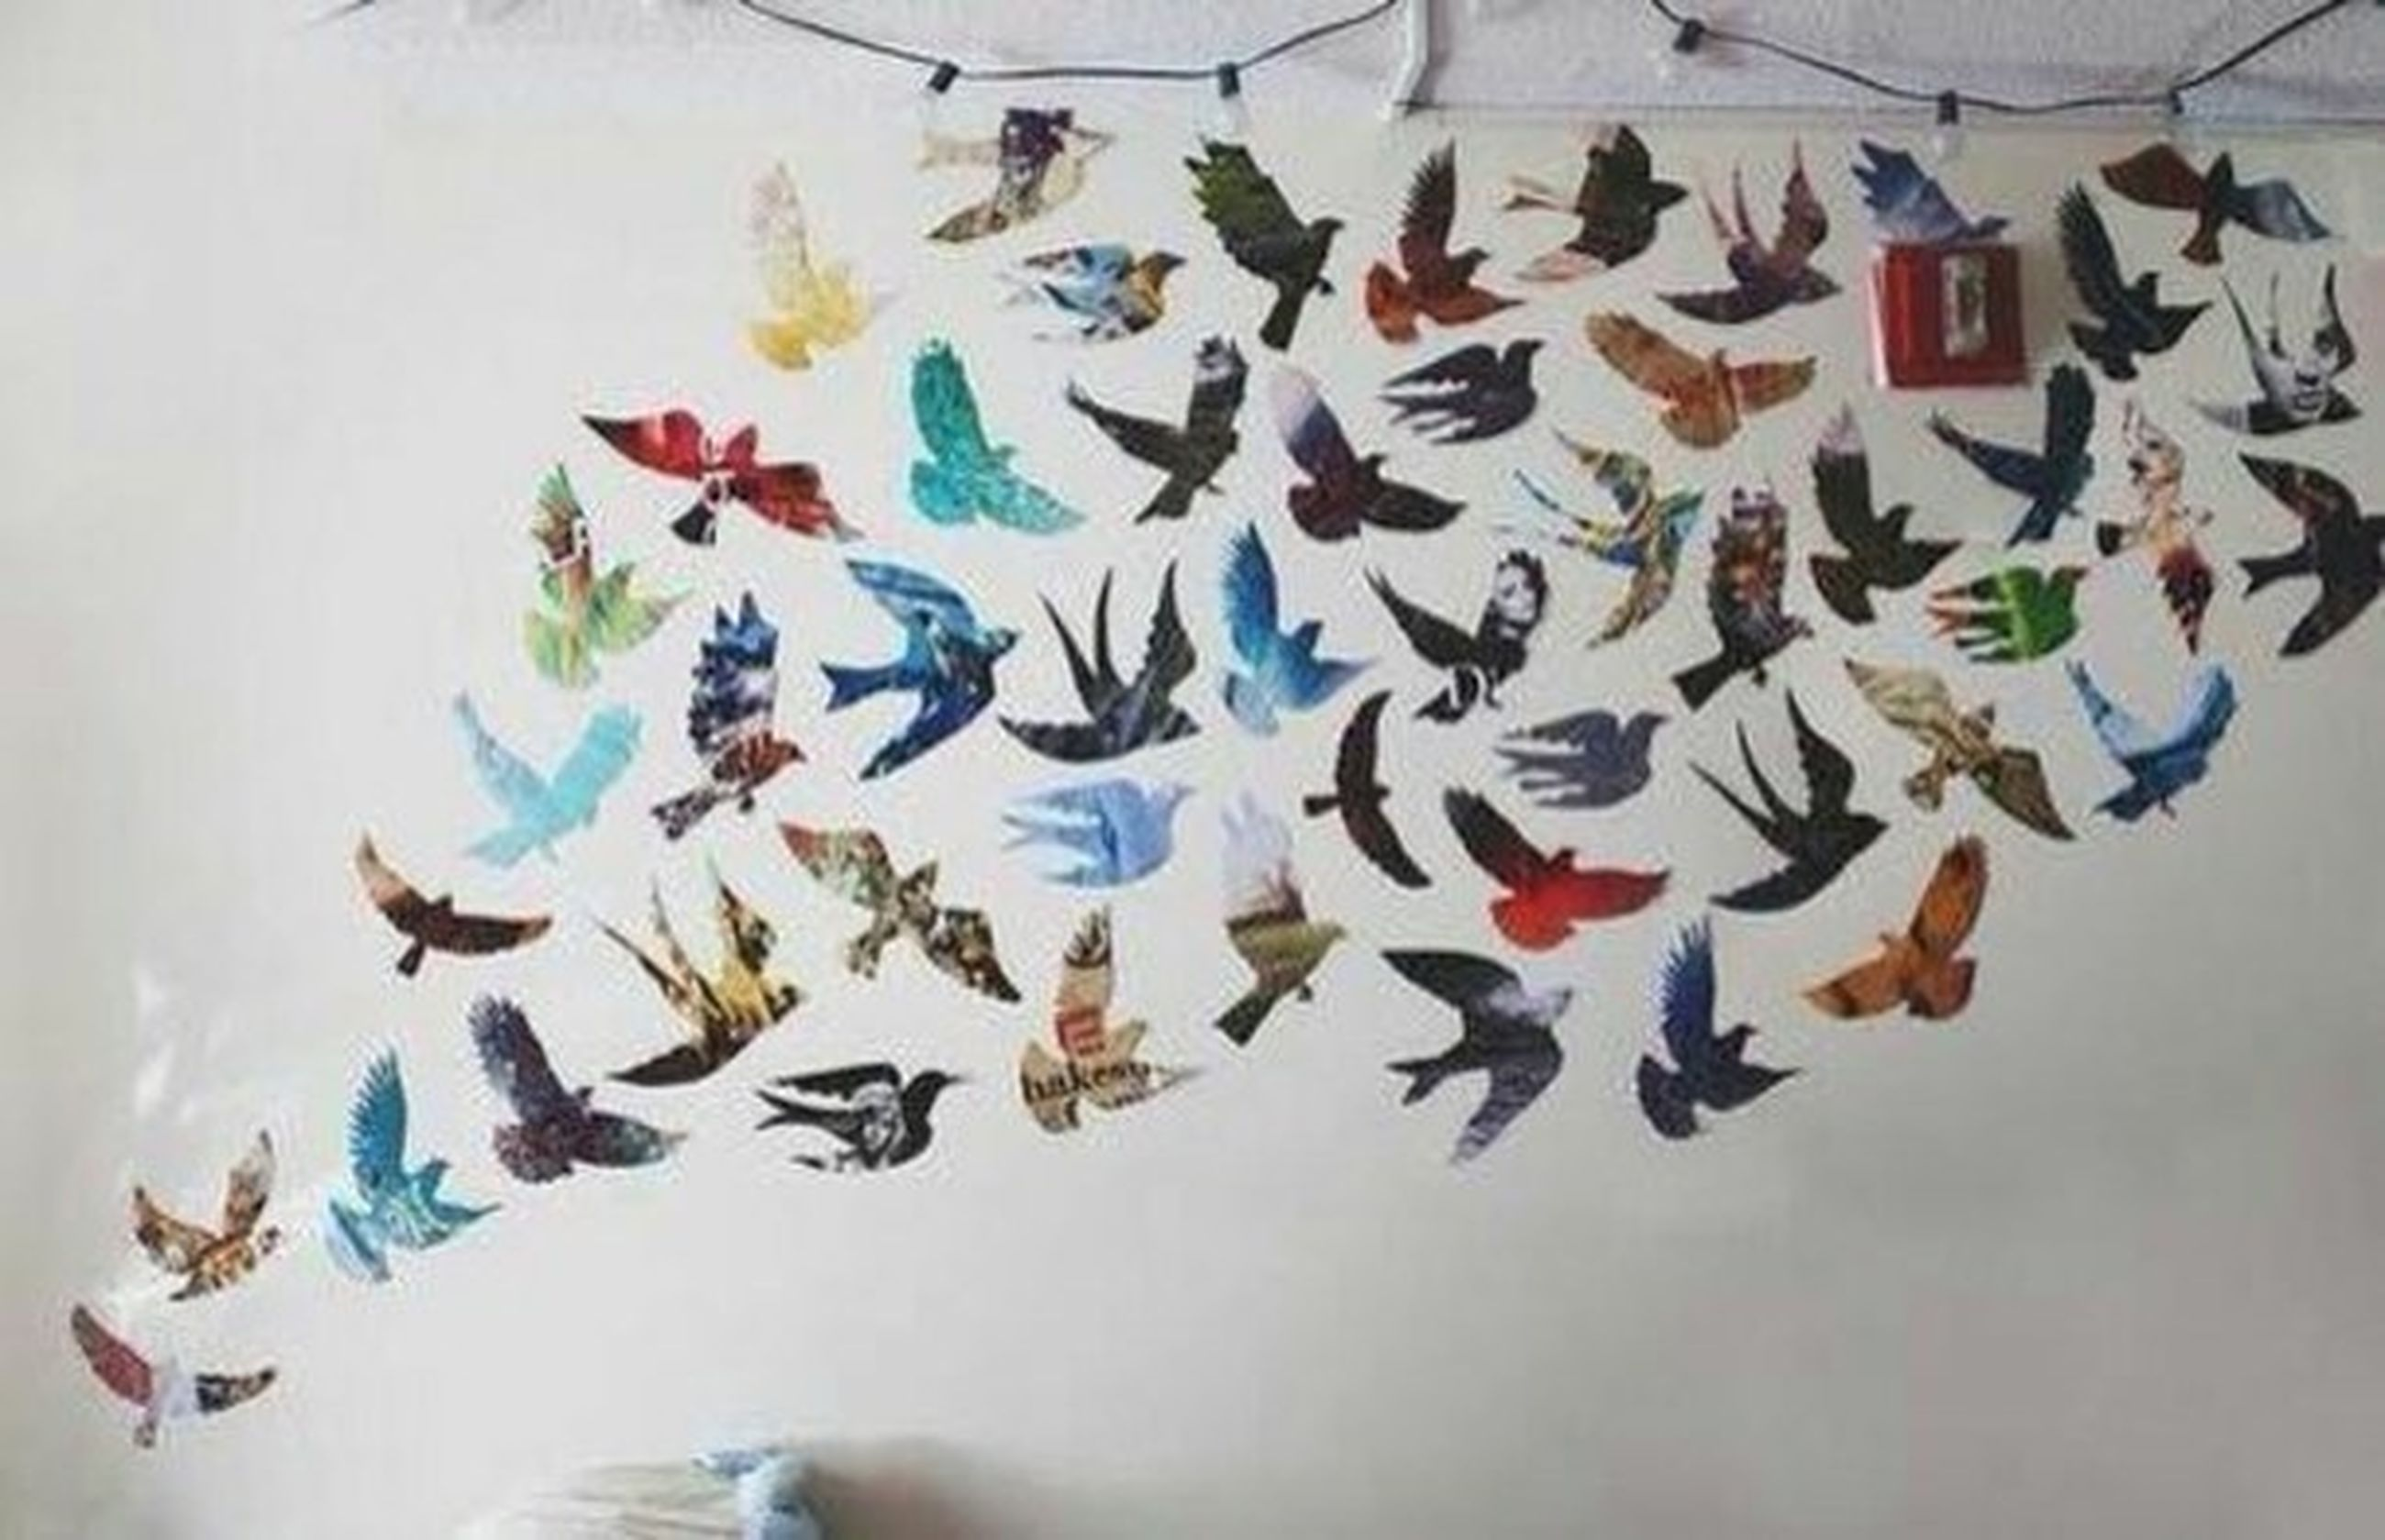 art and craft, art, multi colored, creativity, indoors, animal representation, bird, animal themes, wall - building feature, low angle view, decoration, craft, human representation, pattern, day, flying, no people, high angle view, celebration, colorful